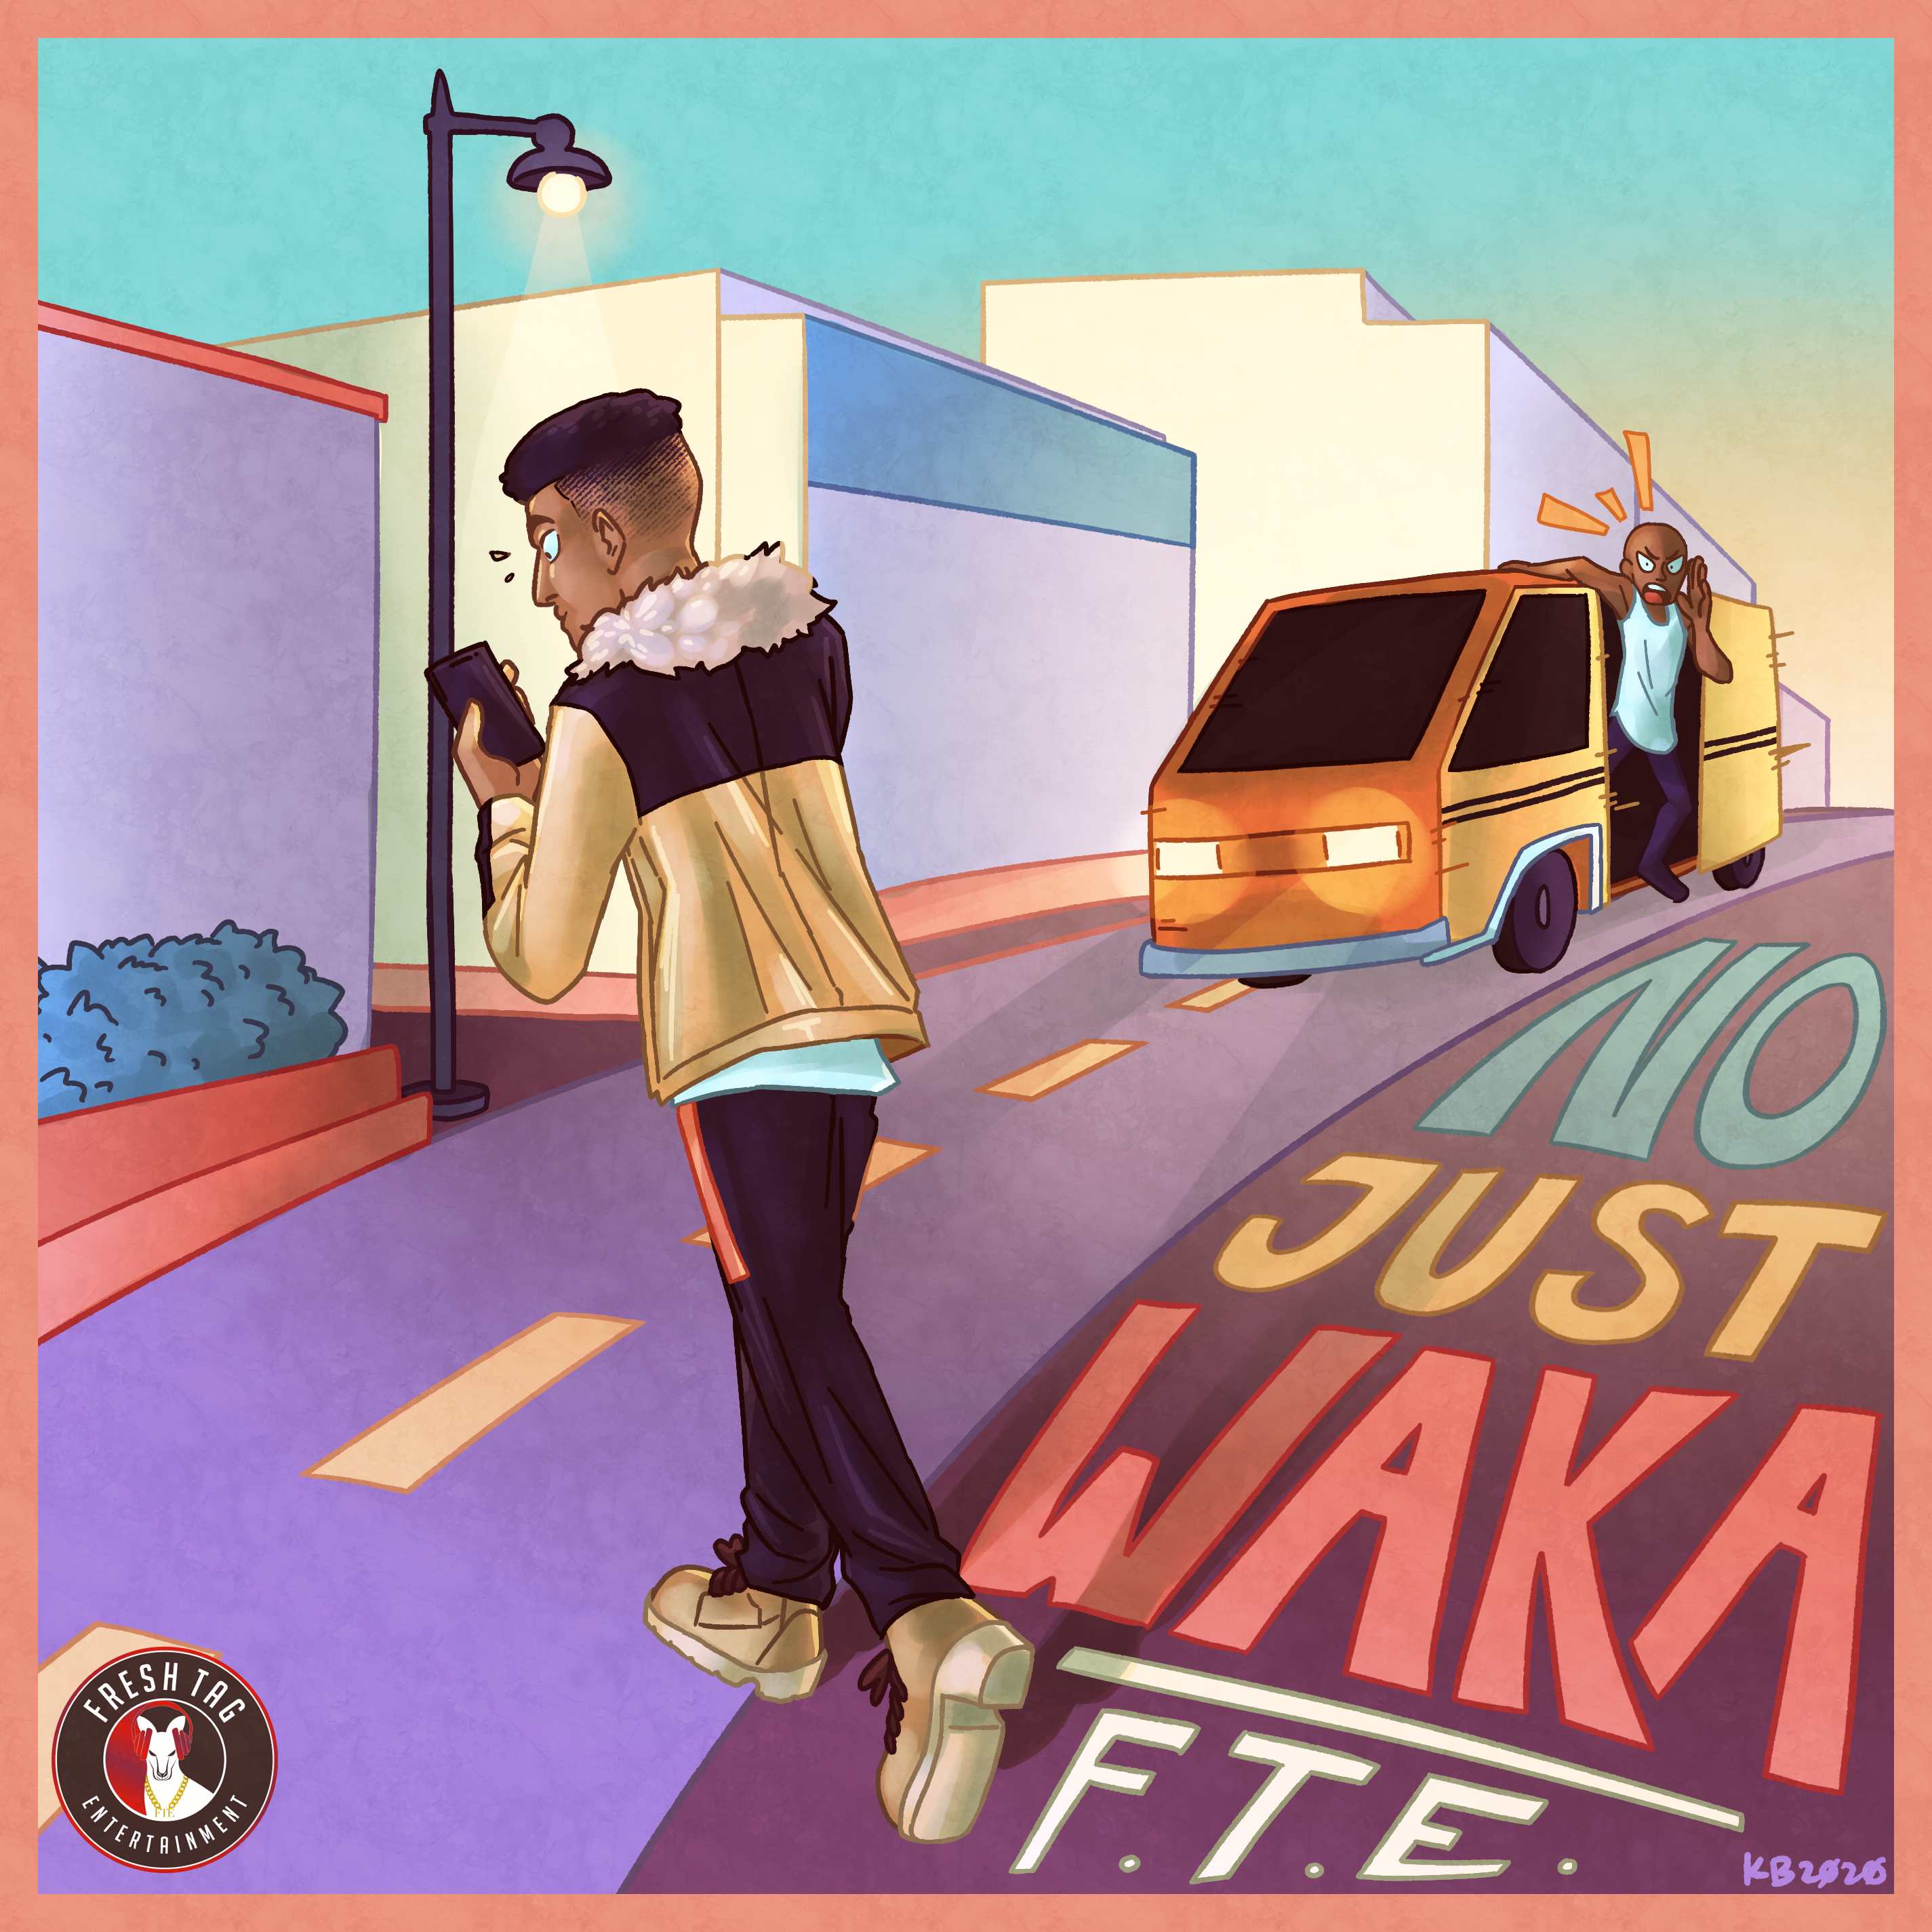 F.T.E – No Just Waka